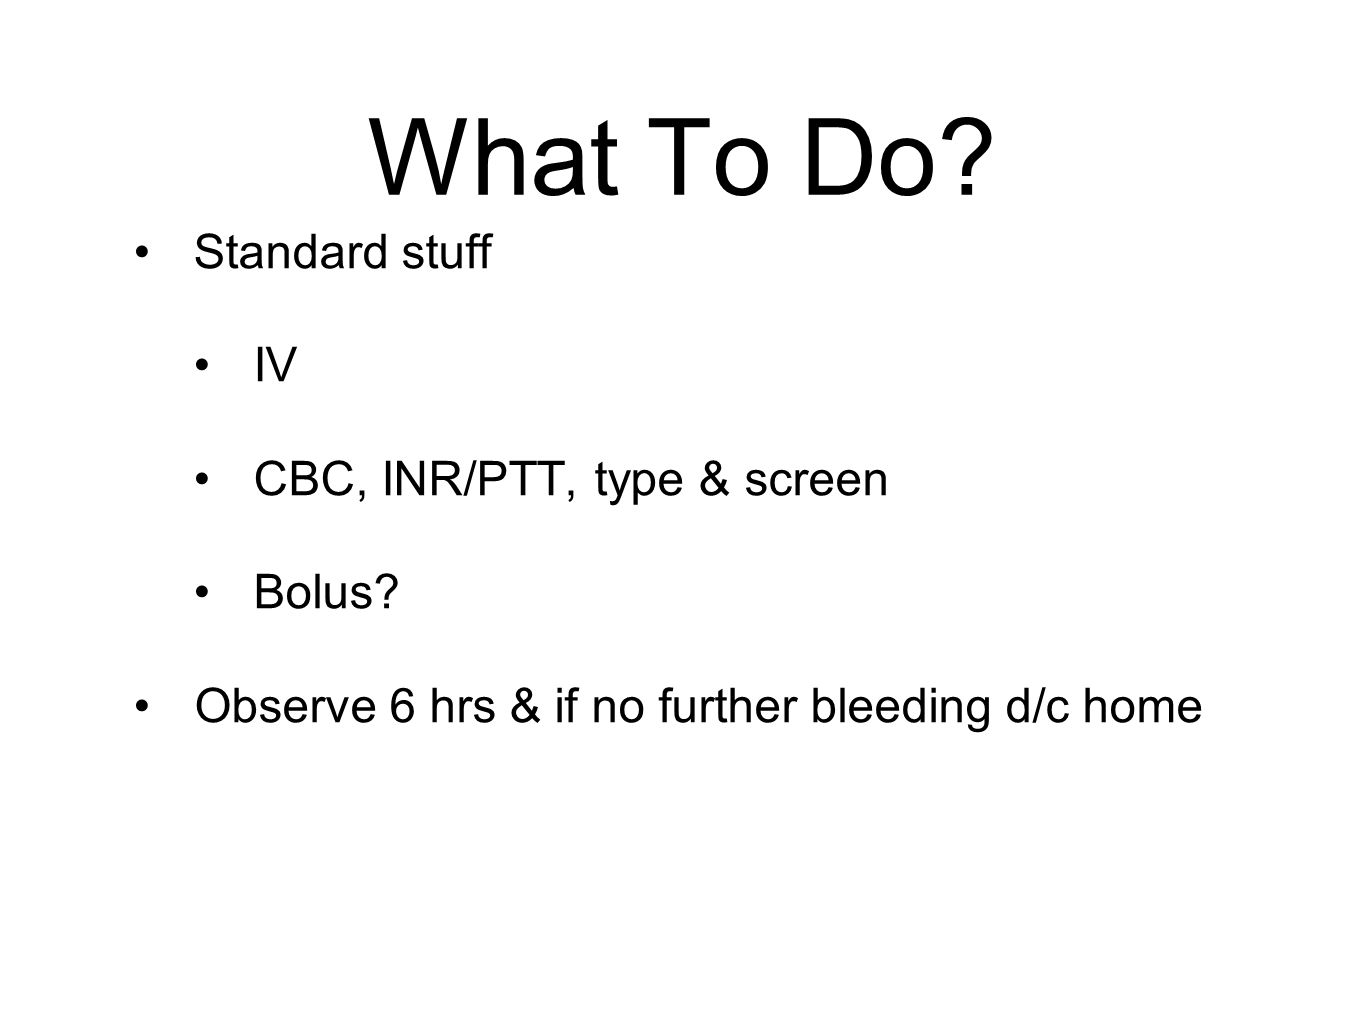 What To Do Standard stuff IV CBC, INR/PTT, type & screen Bolus